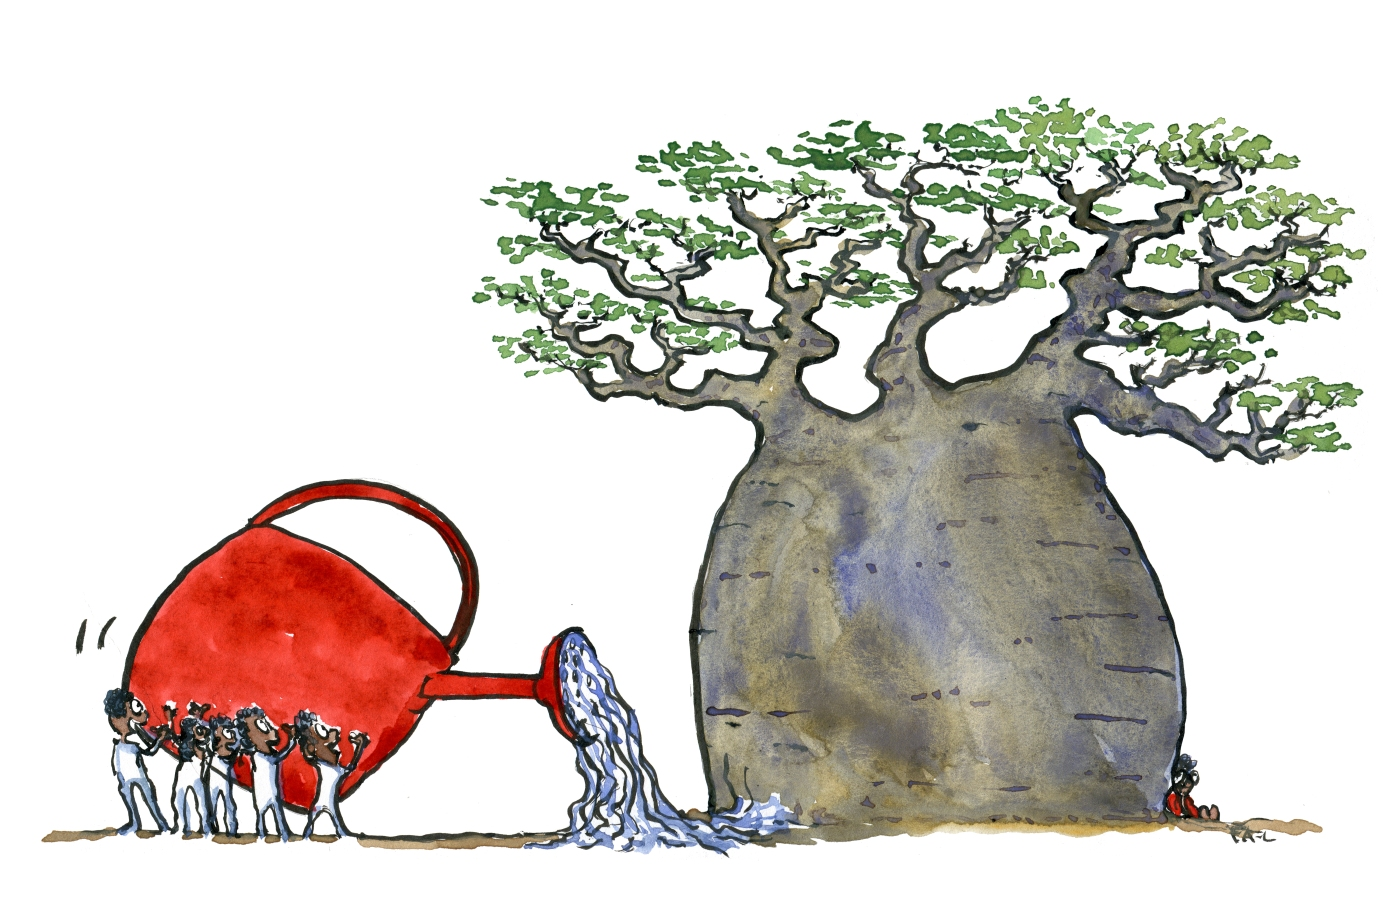 Large,ancient baobab tree and people watering it. Color illustration by Frits Ahlefeldt